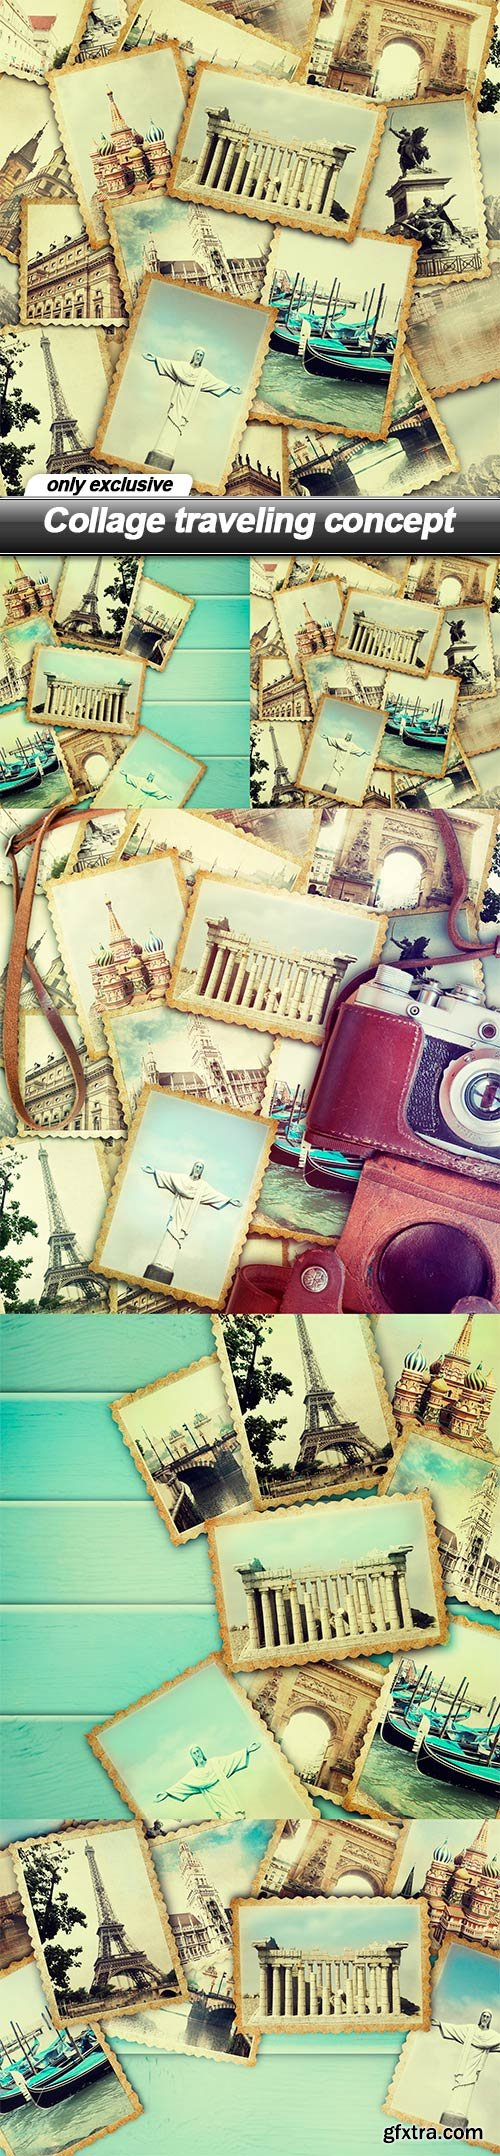 Collage traveling concept - 5 UHQ JPEG